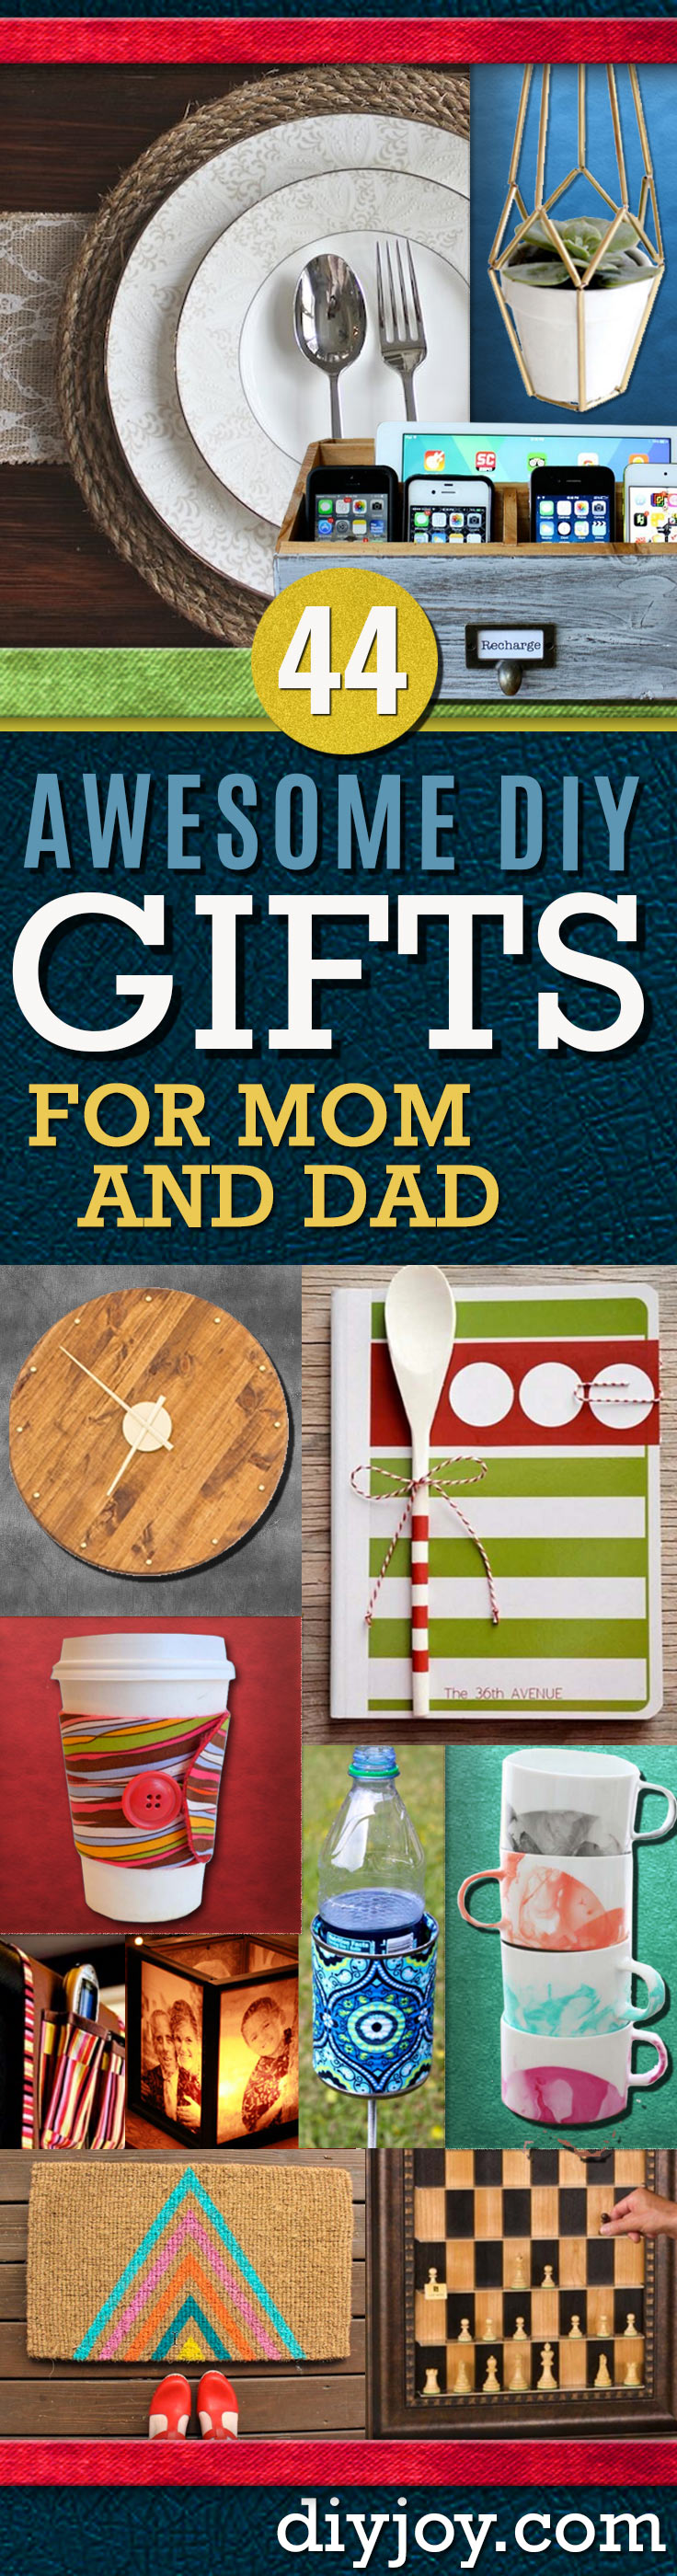 Awesome DIY Gift Ideas Mom and Dad Will Love - DIY Joy